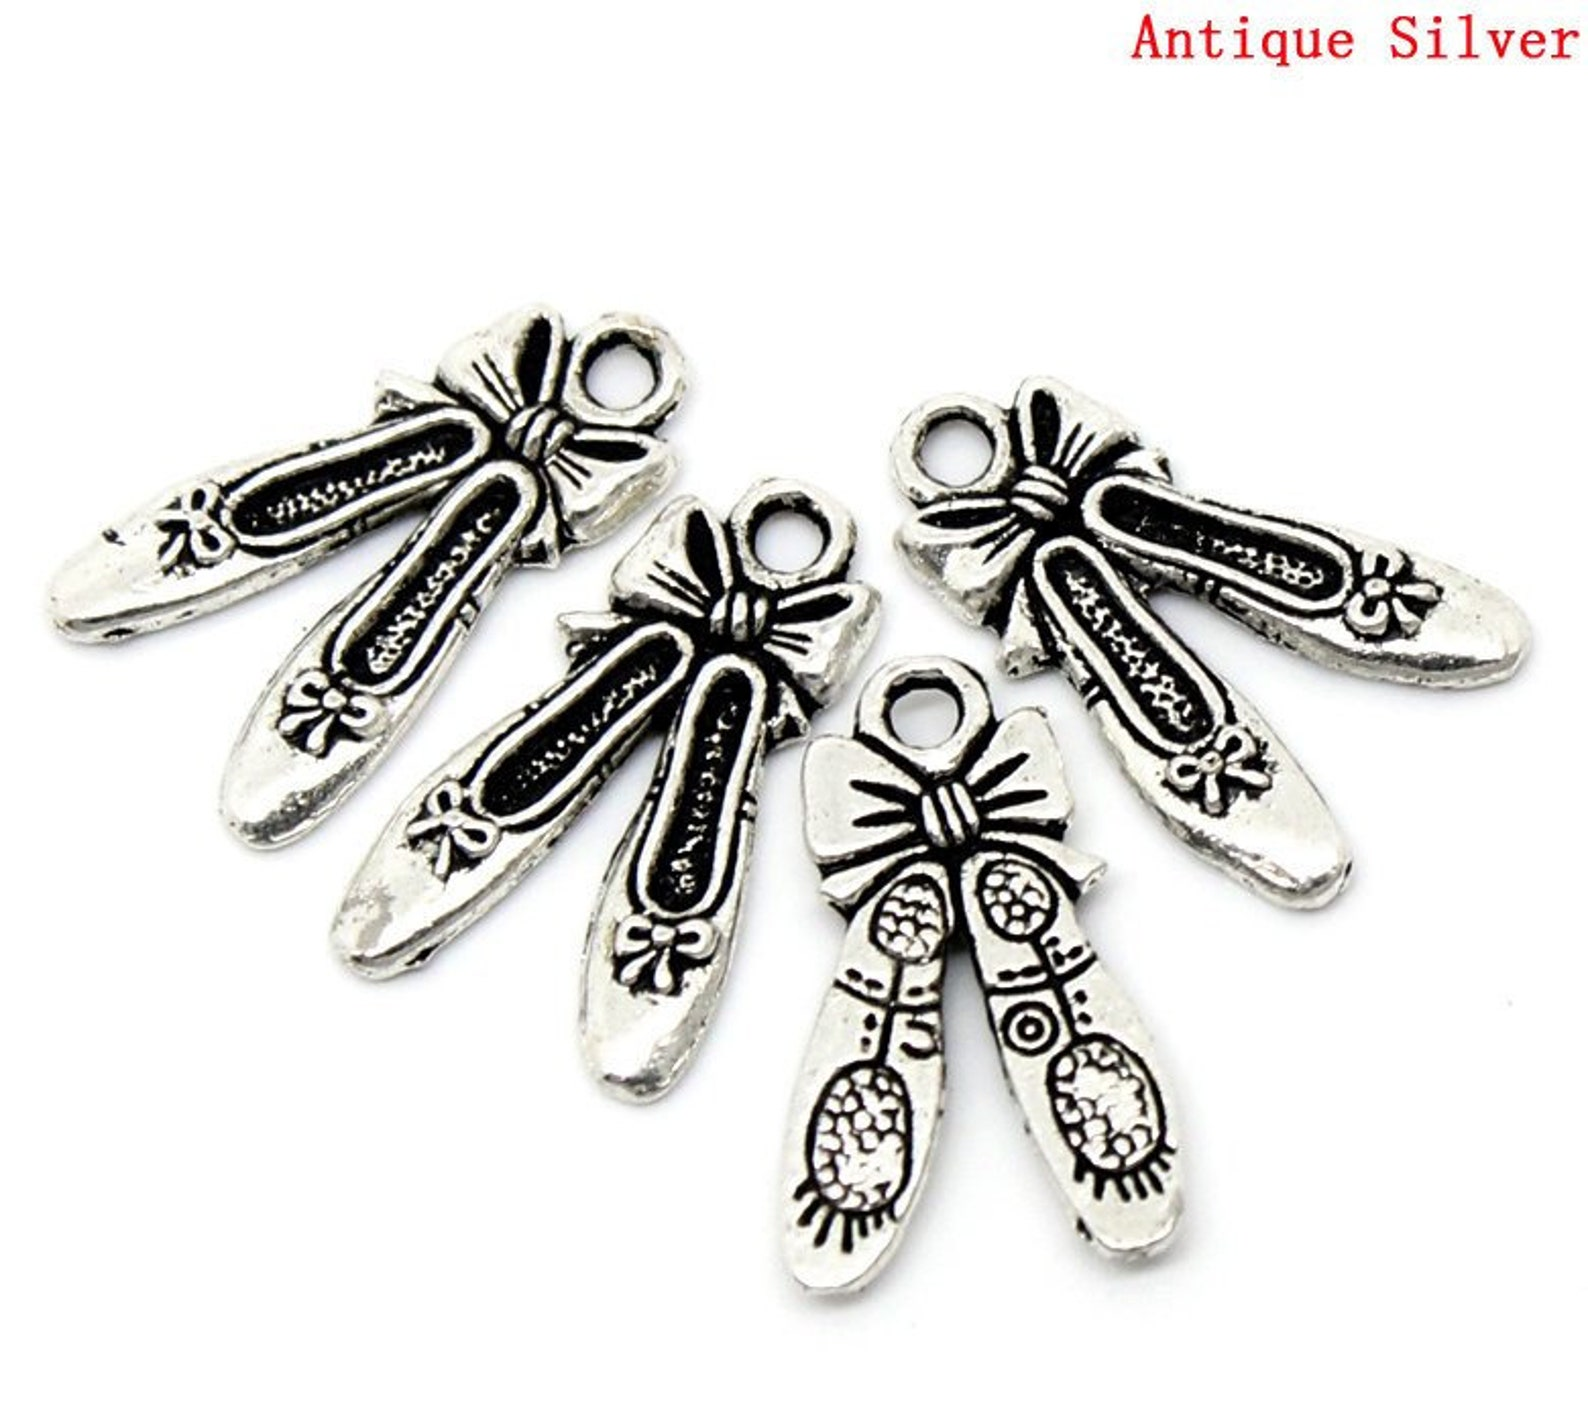 25 ballet shoes antique silver 21x13mm, charms pendants.